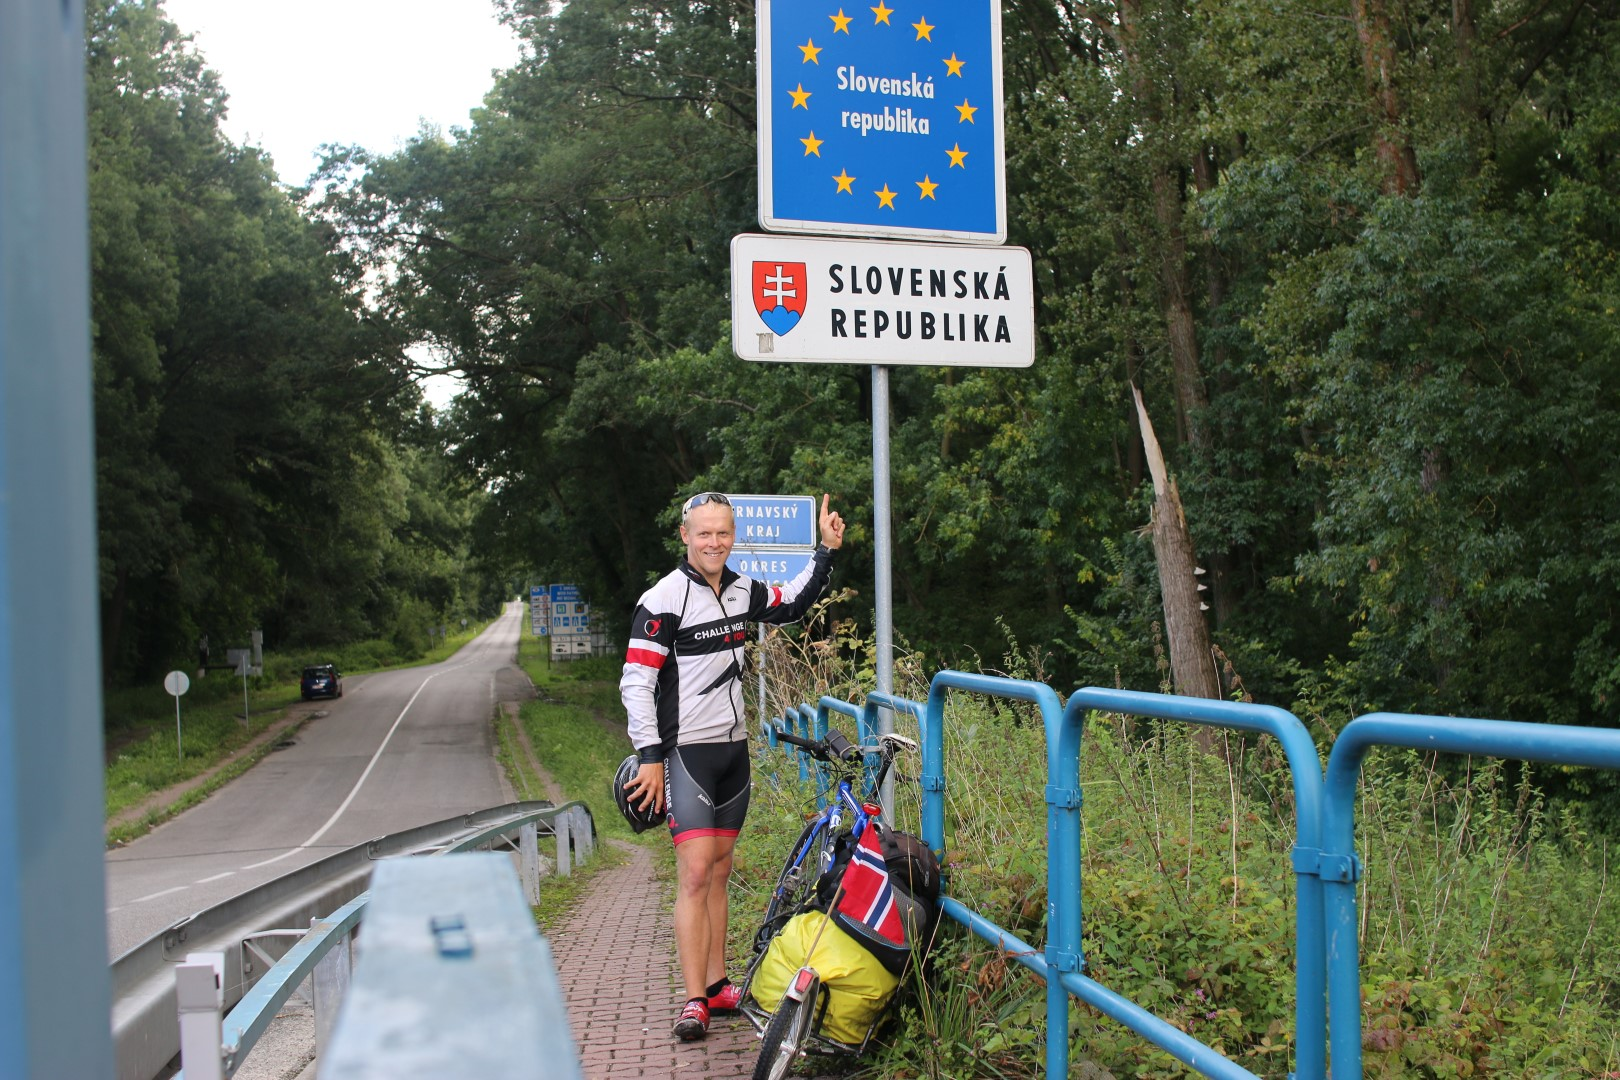 Fantastic  day  on  the  bike  from  Austria,  through  Slovakia  and  back  to  Austria